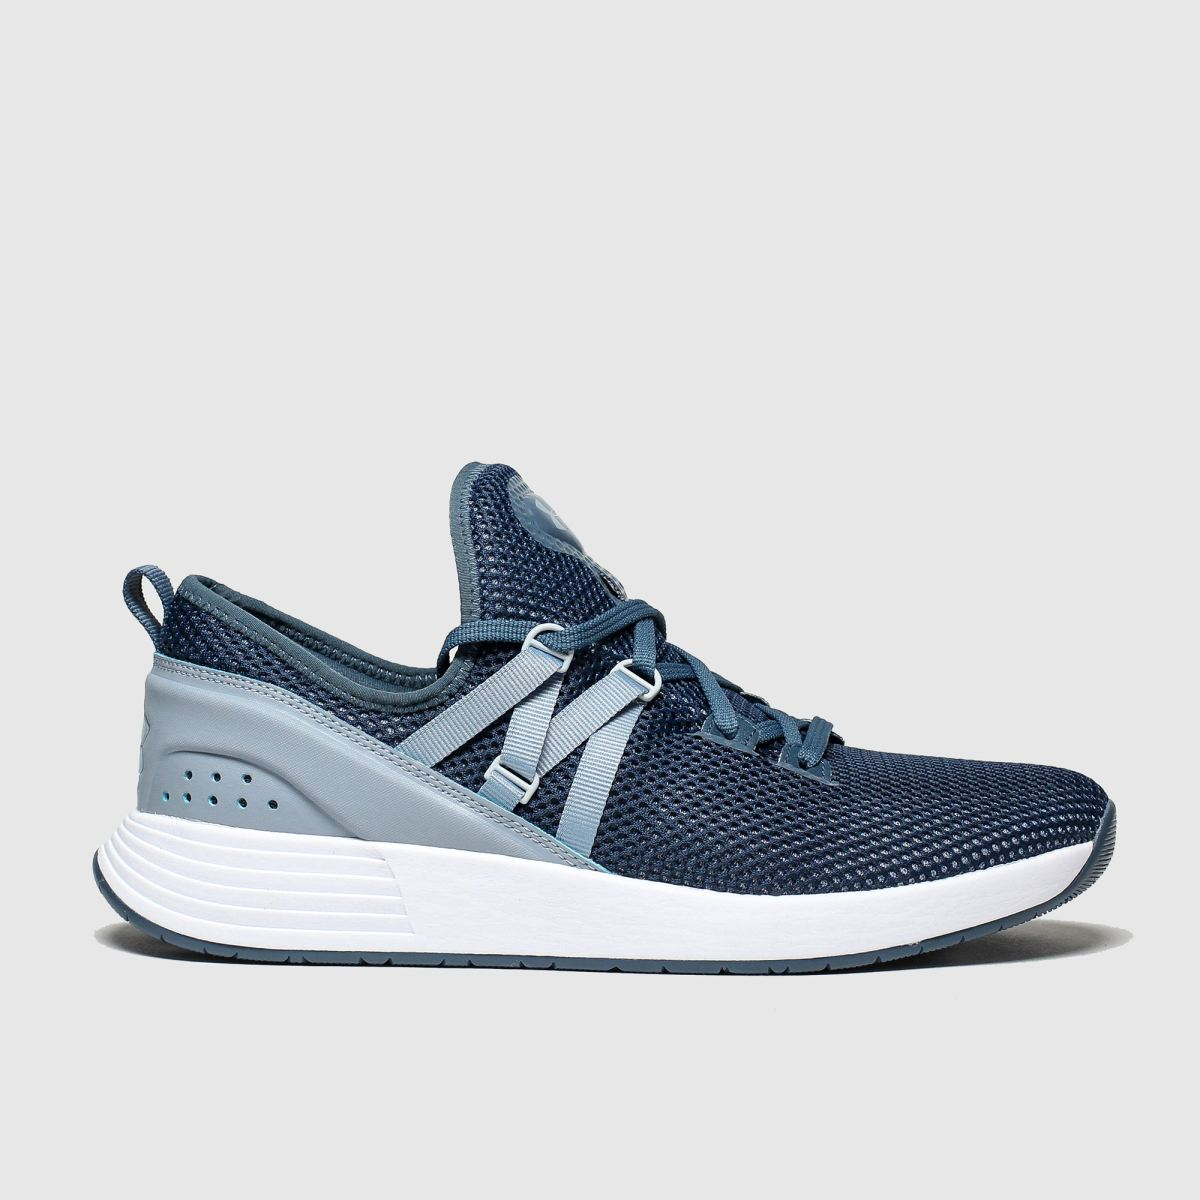 Under Armour Navy & Pl Blue Breathe X Nm Trainers